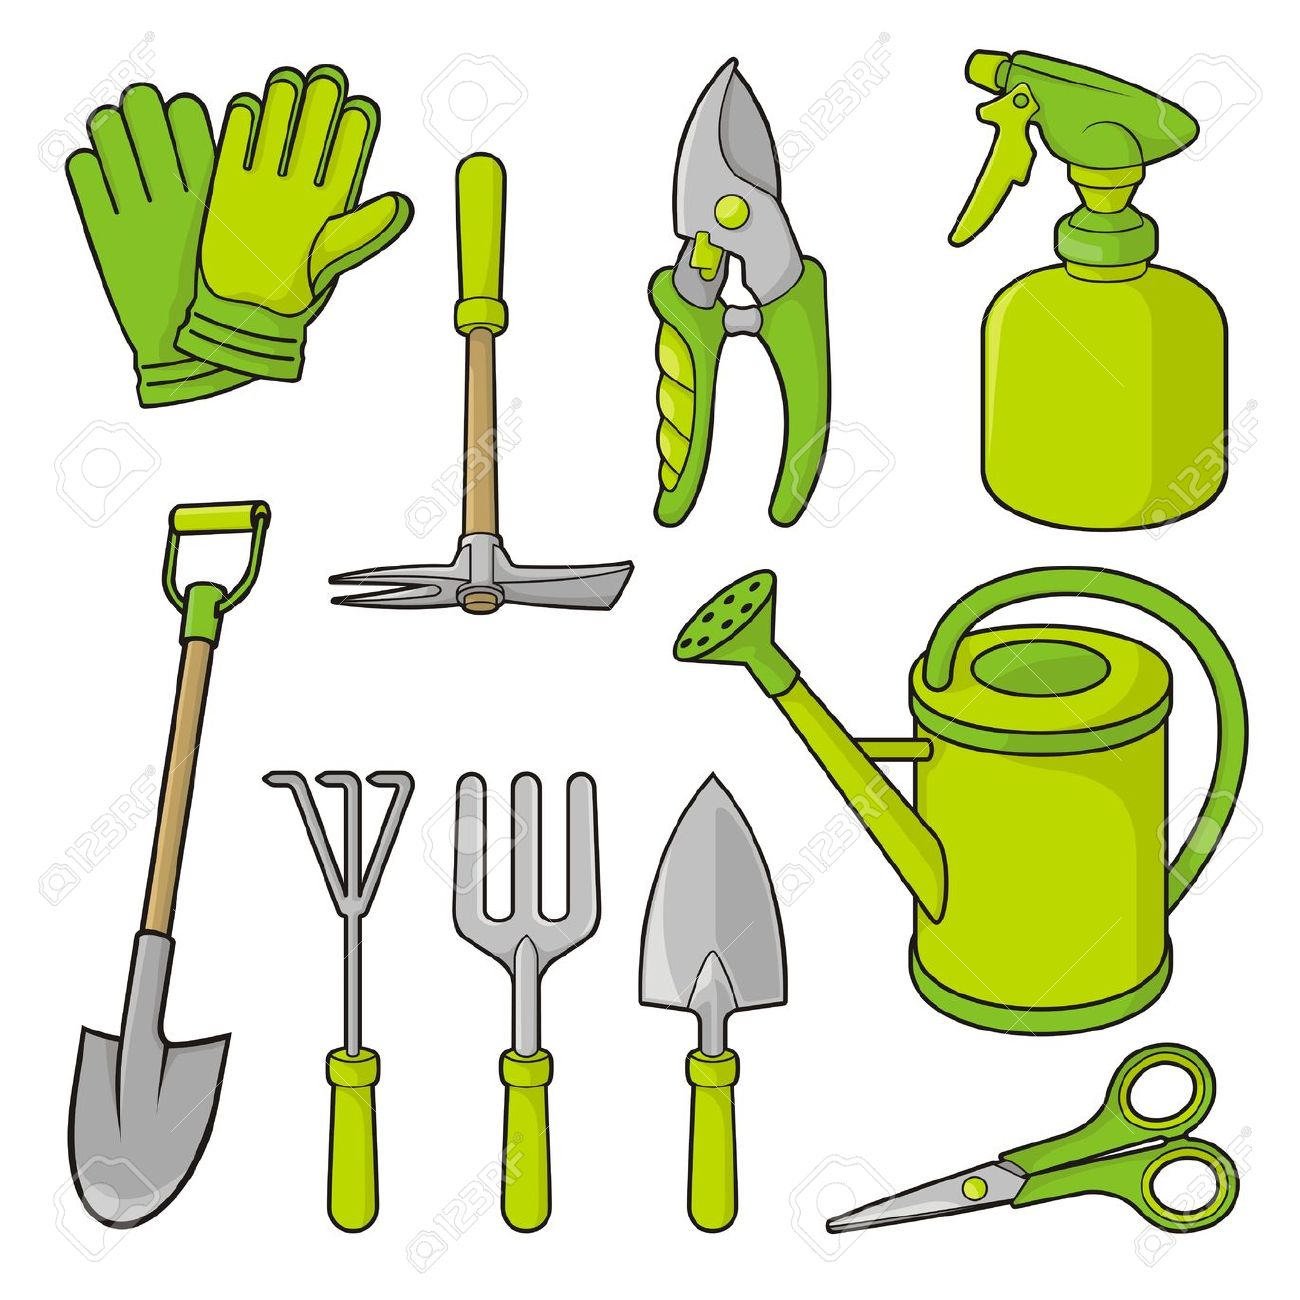 Yard Tools Clip Art : Home design ideas garden tools clipart